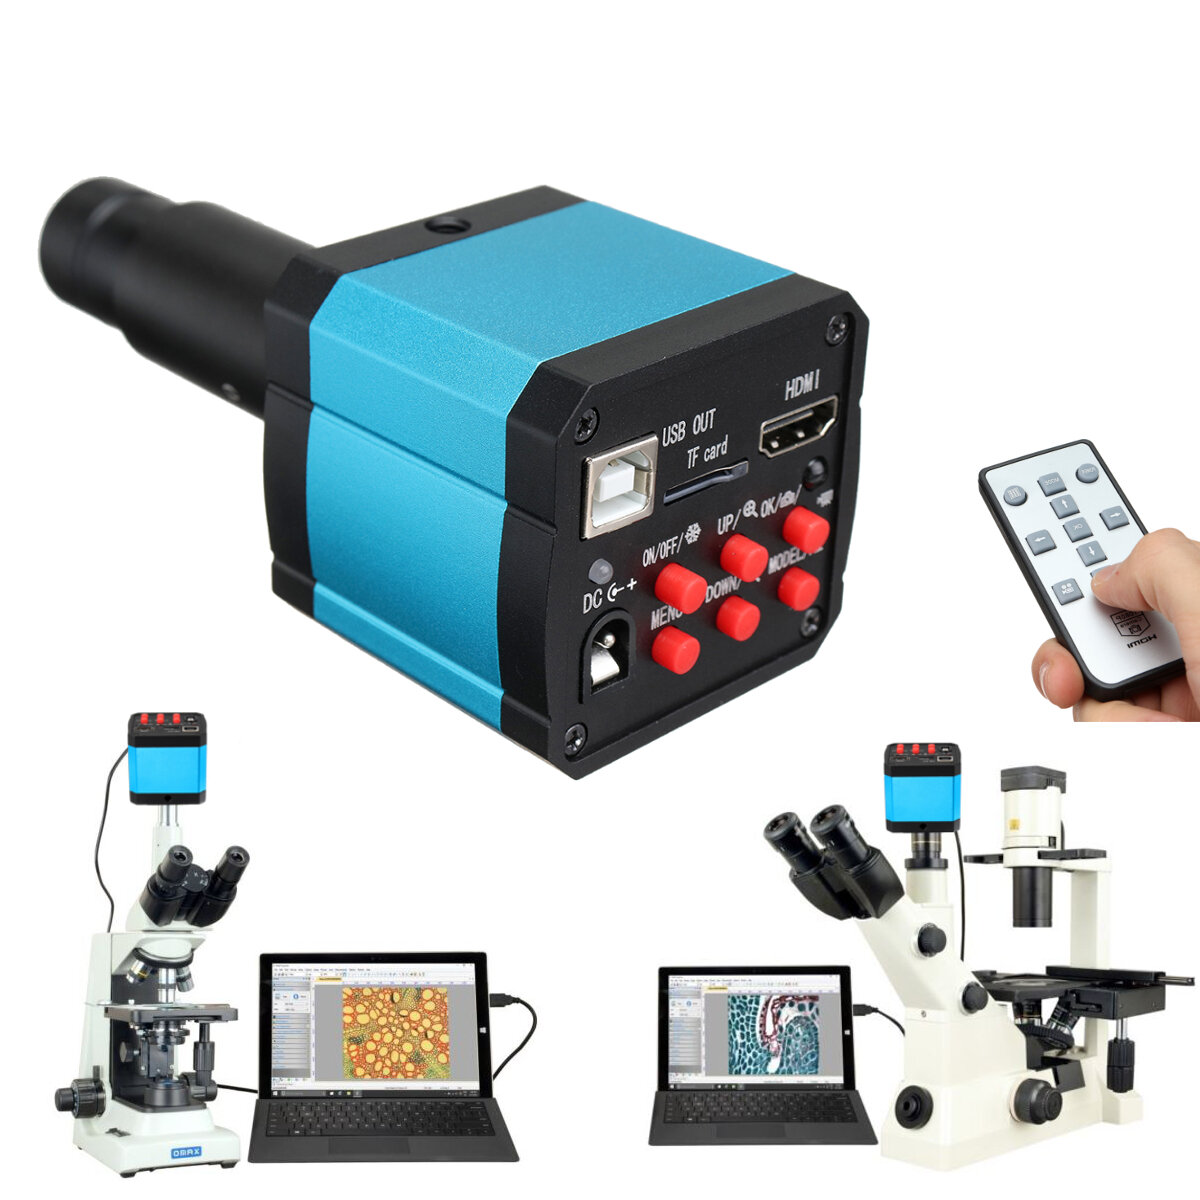 G600 Digital 1-600X 3.6MP 4.3inch HD LCD Display Microscope Continuous Magnifier Upgrade Version - 1